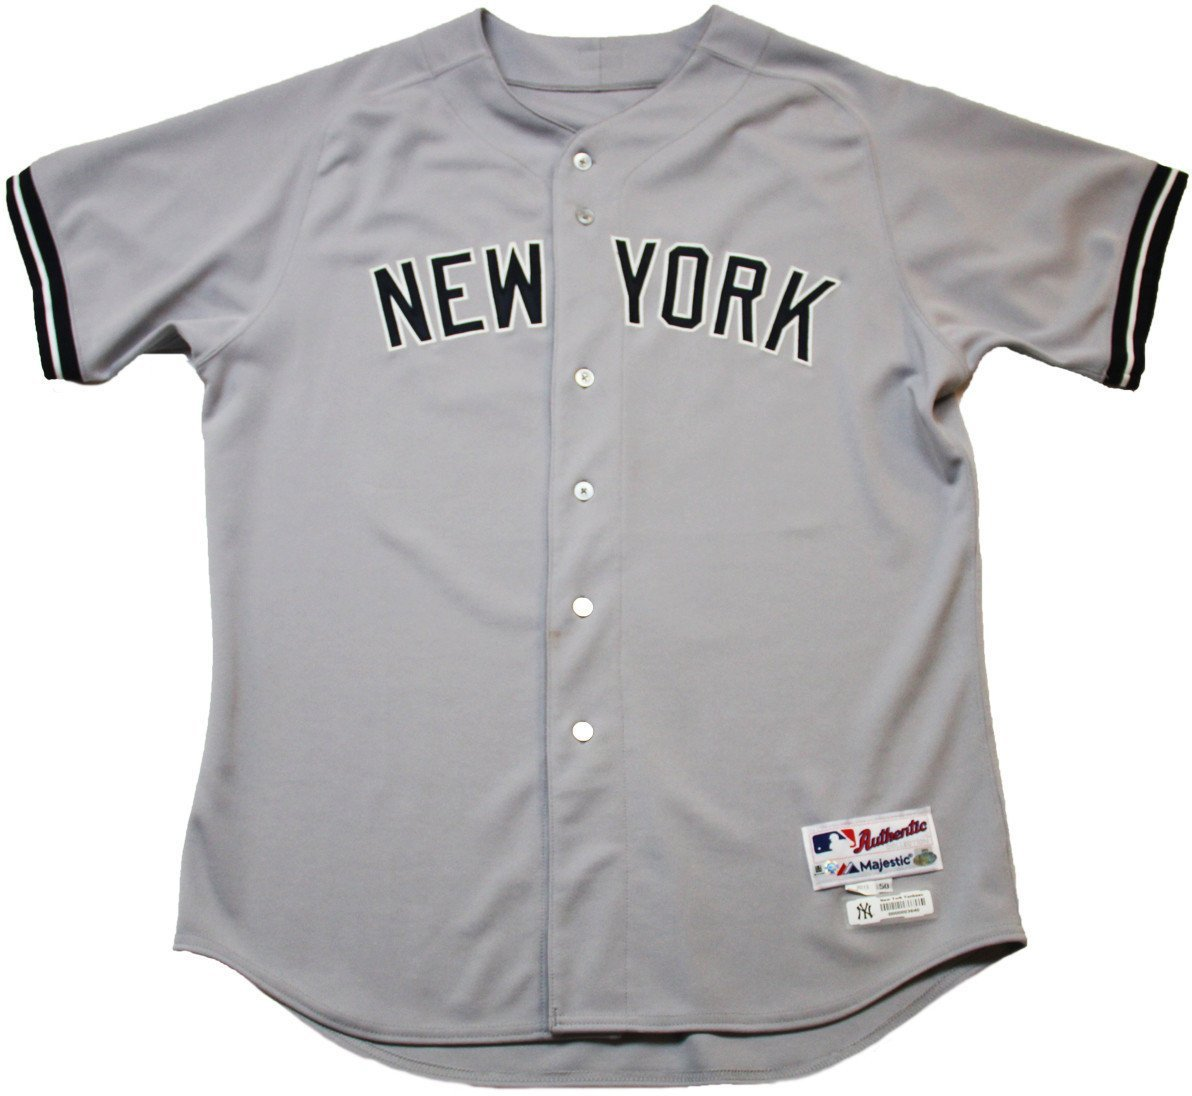 promo code 5922a 8d1f3 Chris Stewart Jersey - NY Yankees Team Issued #19 Grey ...